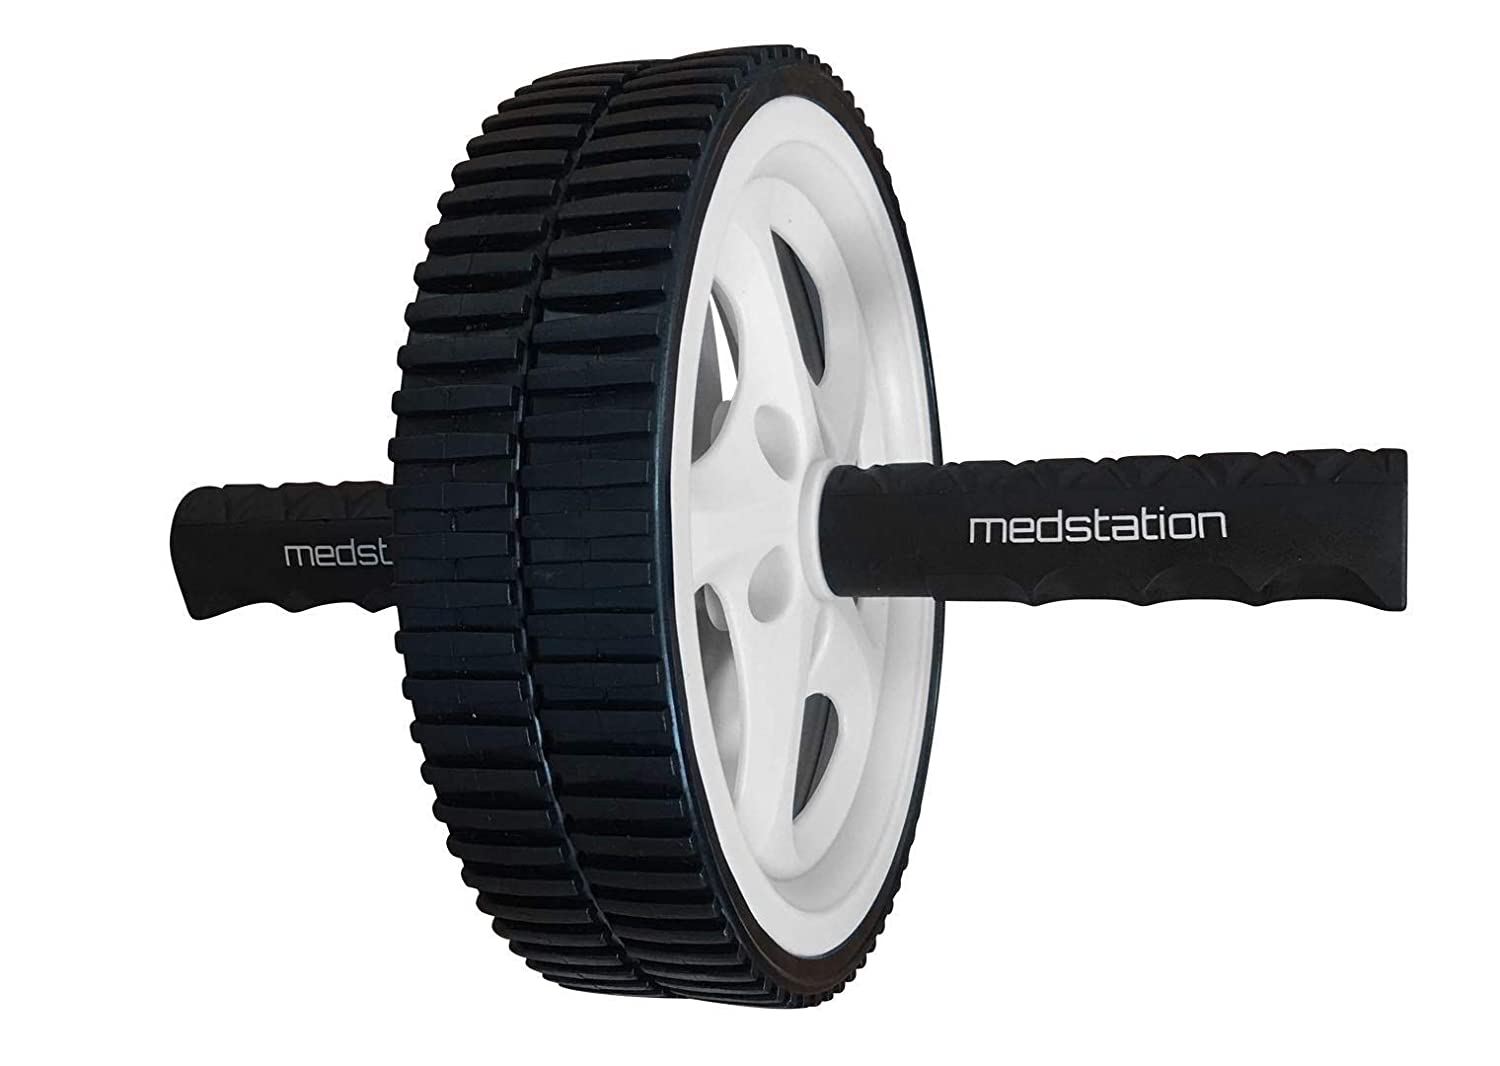 Medstation Ab Roller Wheel for Abdominal Exercise for Home Gym Exercise Wheel with Industrial Steel Core and Ergonomic Grips Sculpts Abs and Tones Your Core to Reduce Belly Fat and Slim Your Waist